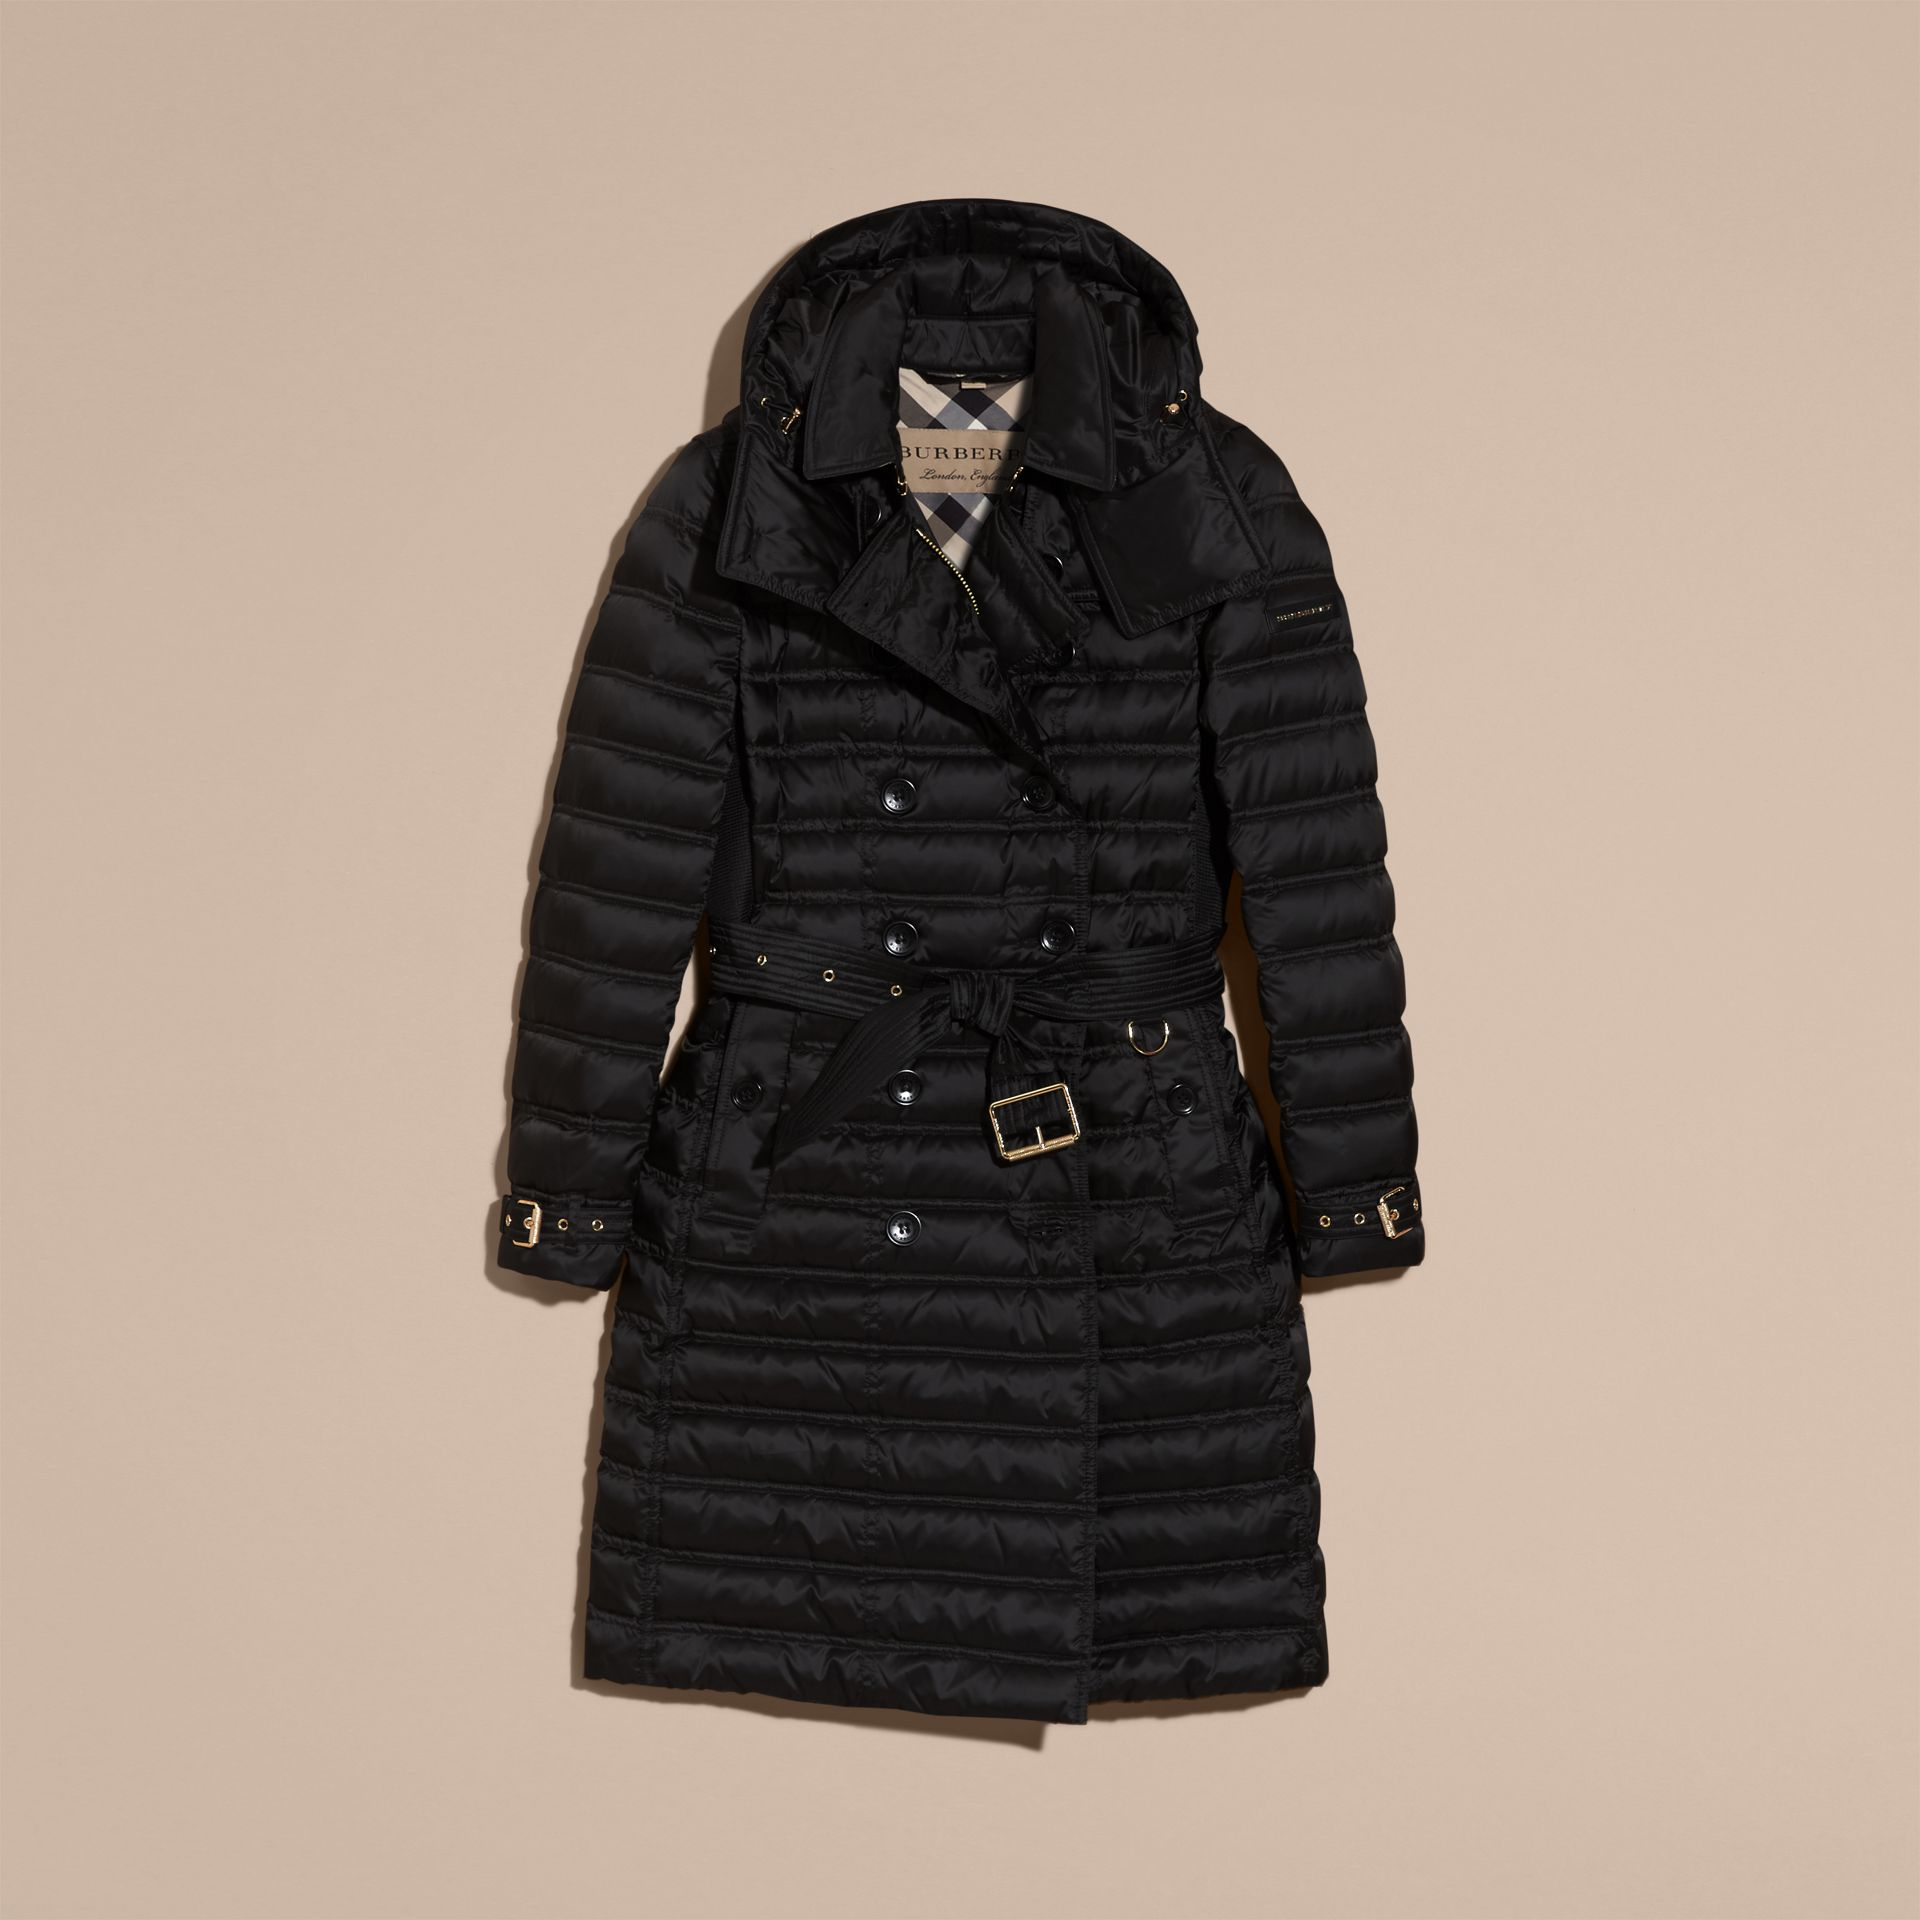 Black Down-filled Puffer Coat with Detachable Hood Black - gallery image 4